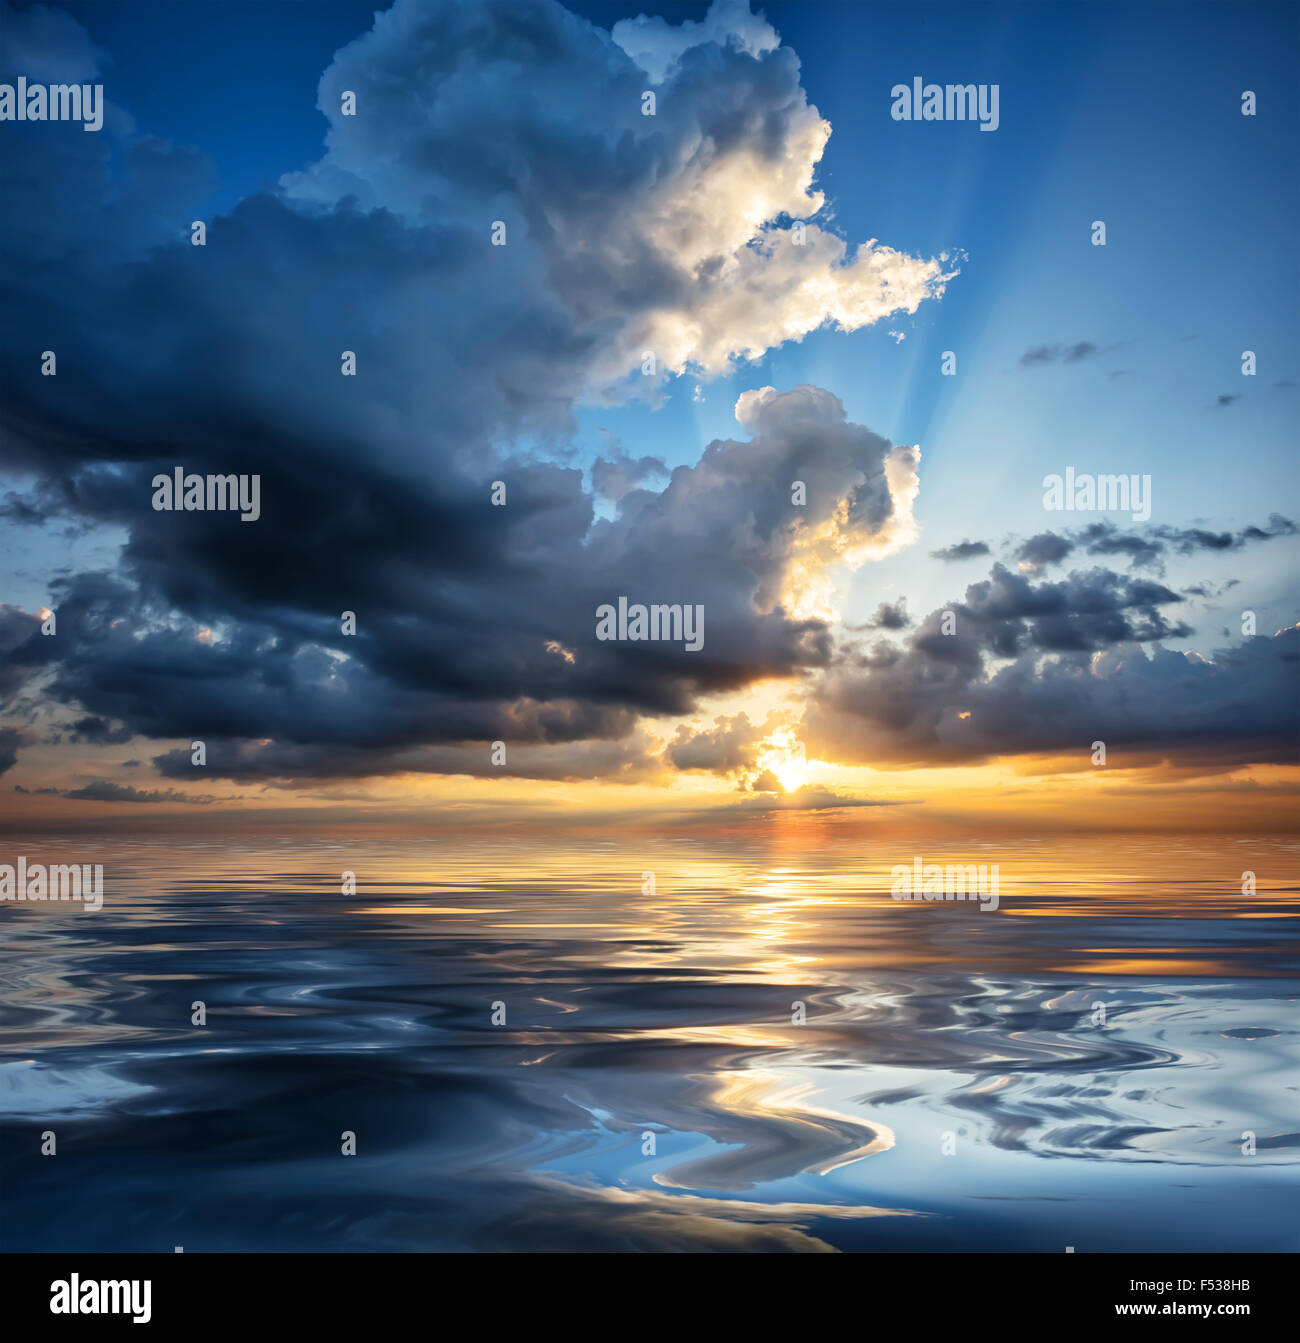 Dramatic sunset sky reflected in the water - Stock Image